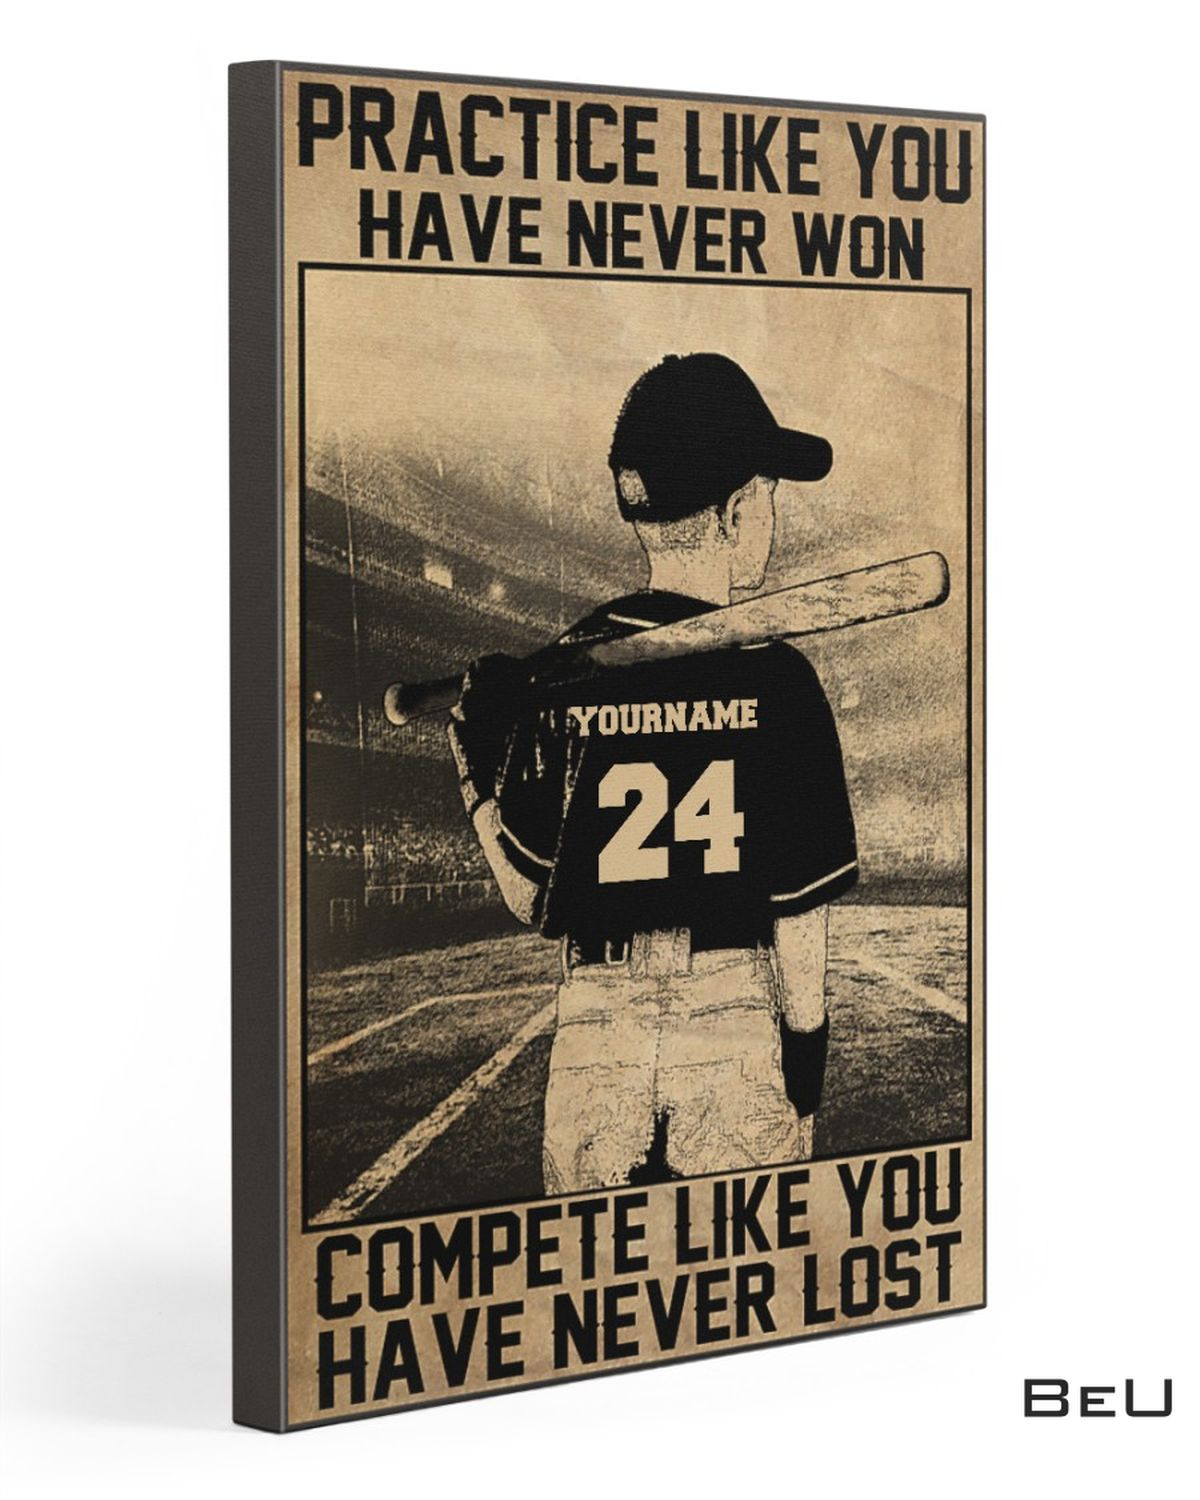 Personalized Baseball Batter Practice Like You Have Never Won Complete Like You Have Never Lost Canvas